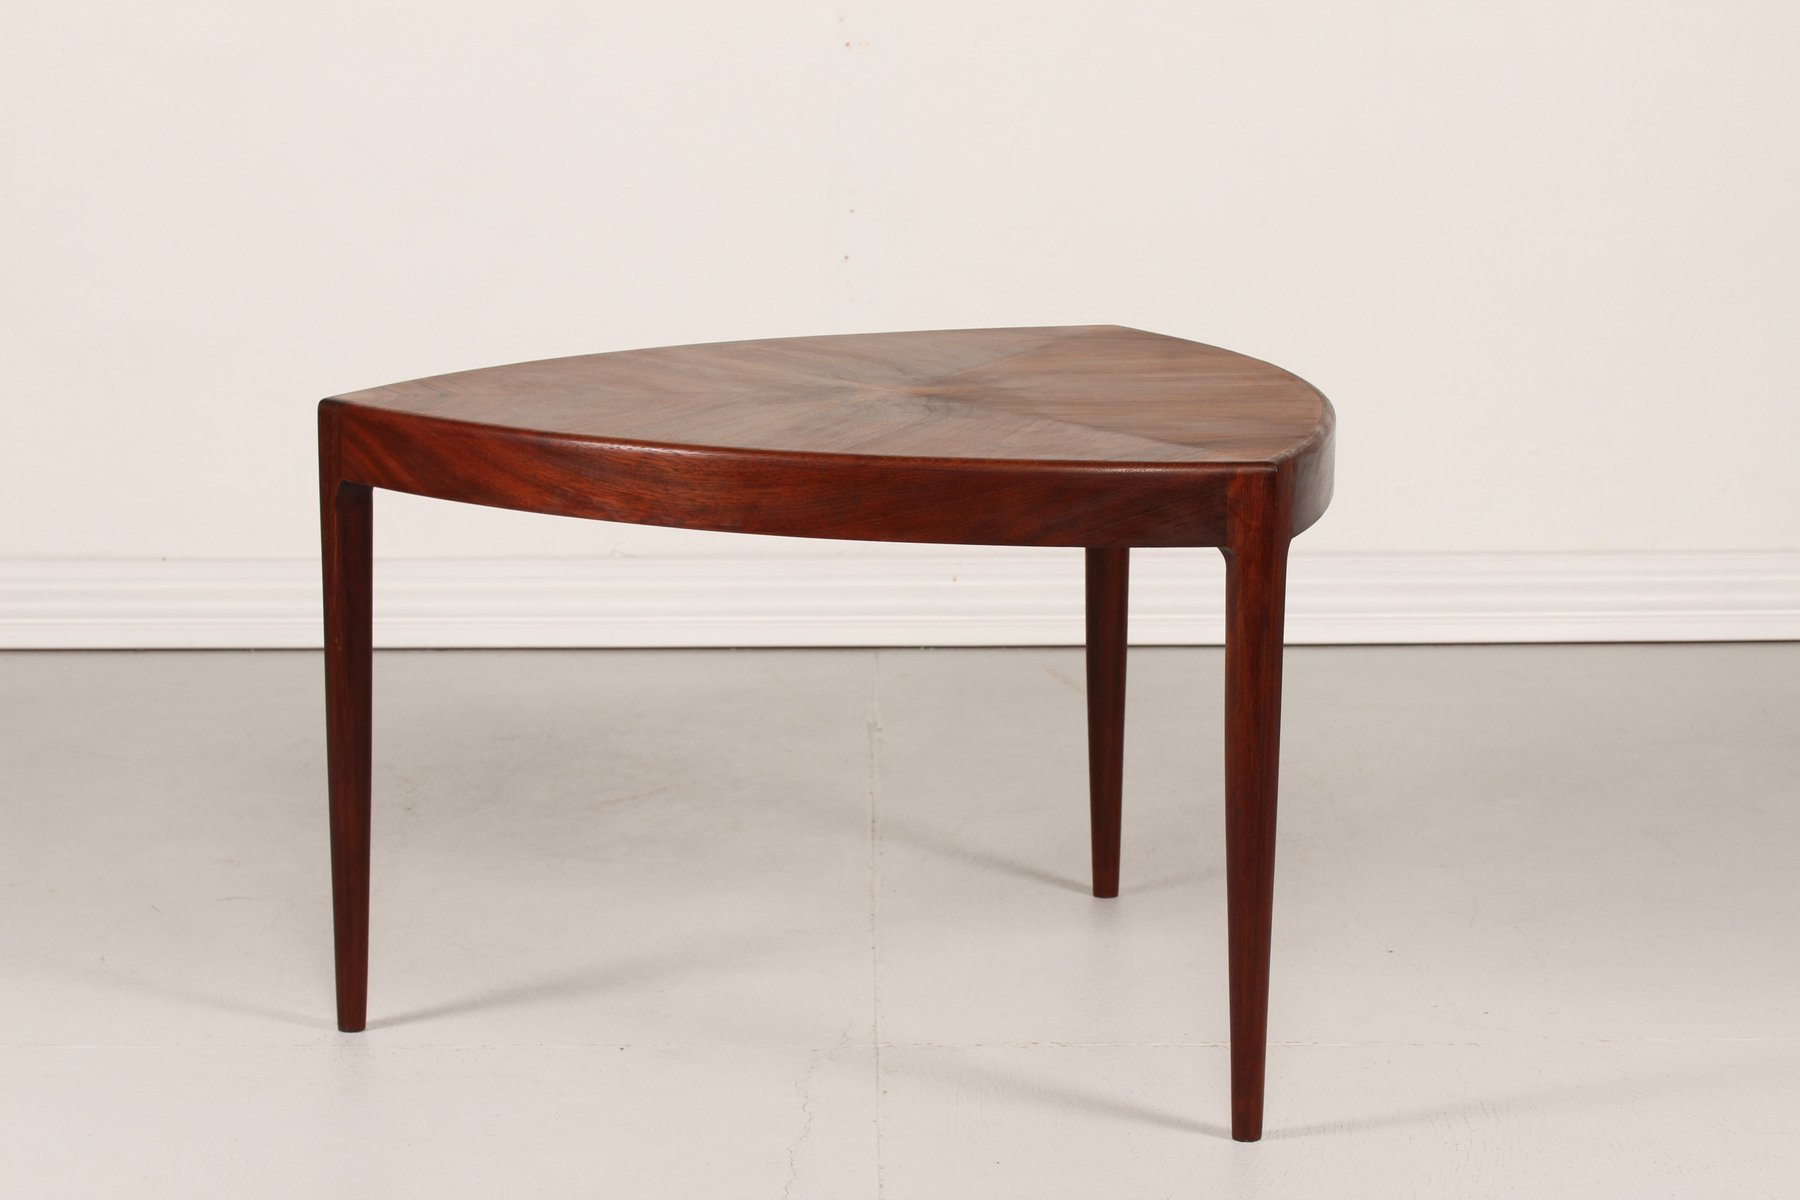 Vintage Danish Triangular Coffee Table 1950s for sale at Pamono